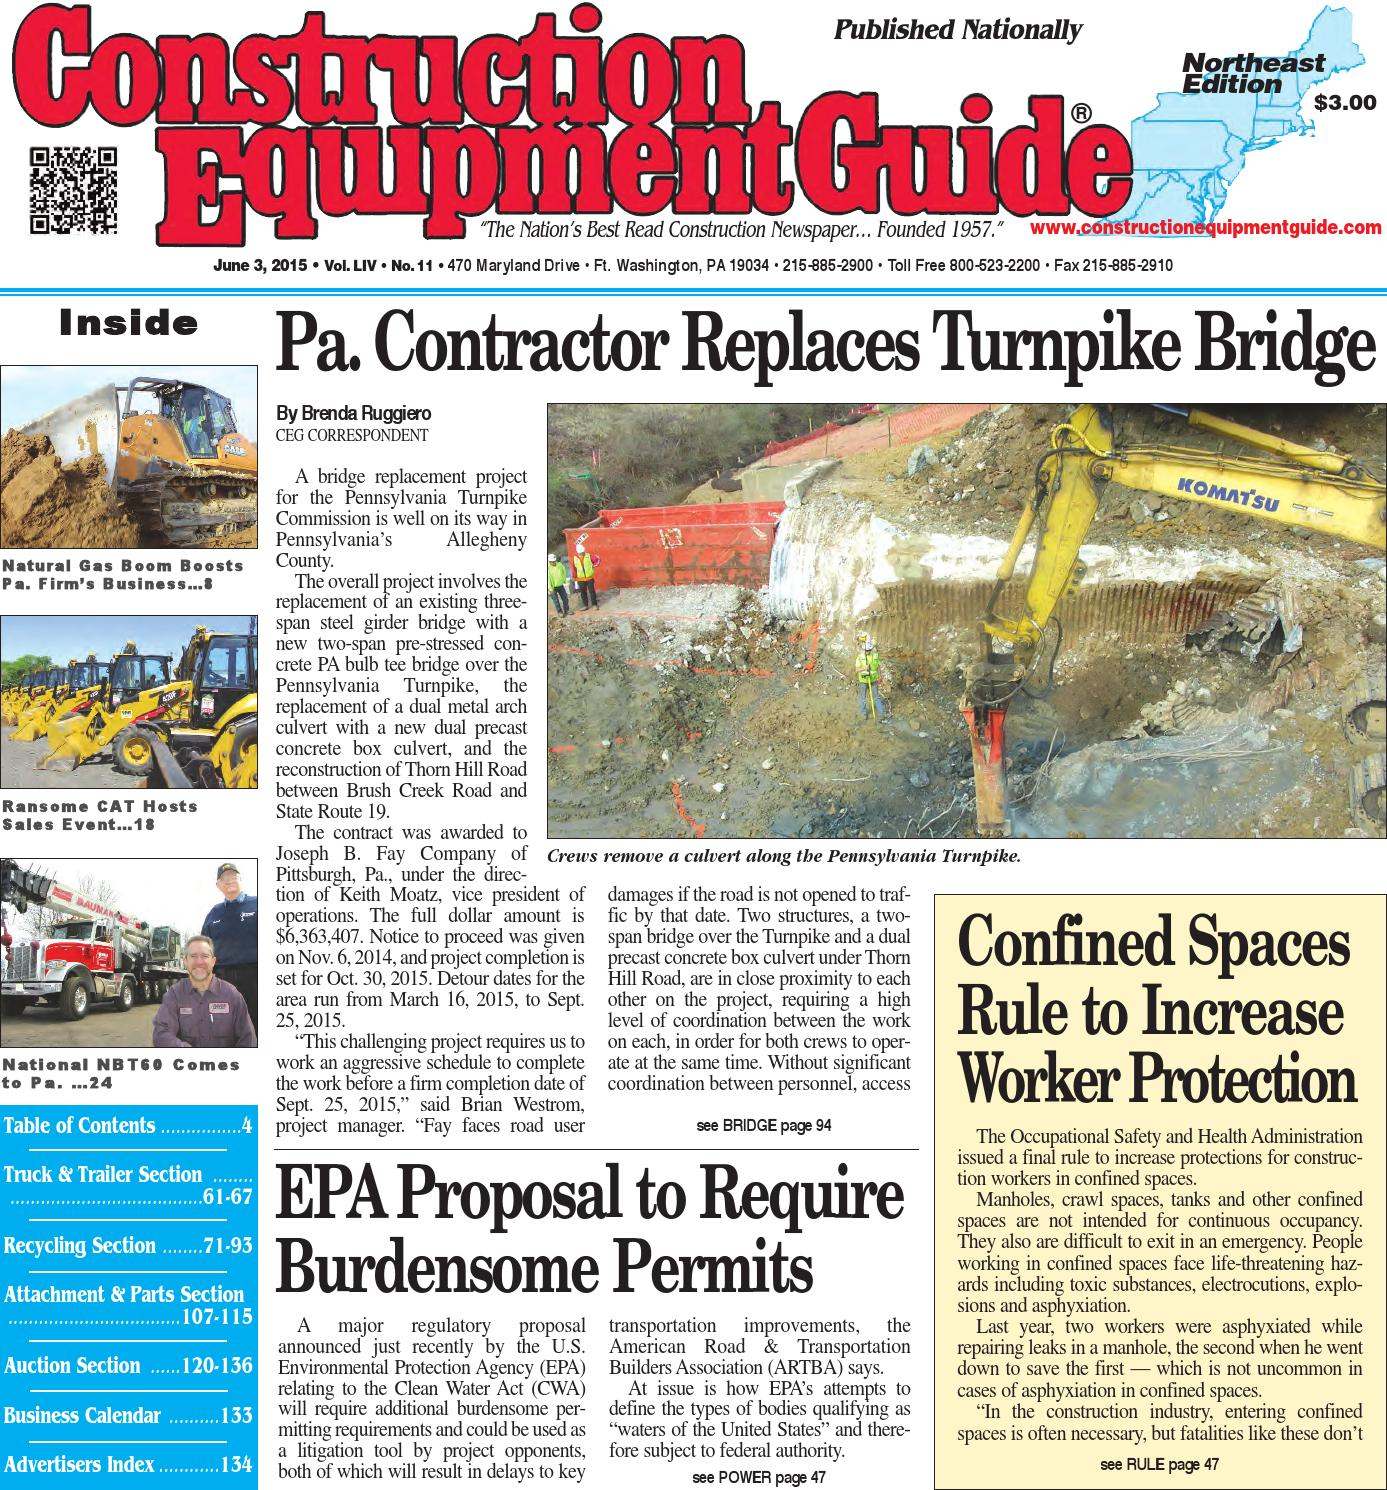 Northeast 11 2015 by Construction Equipment Guide - issuu